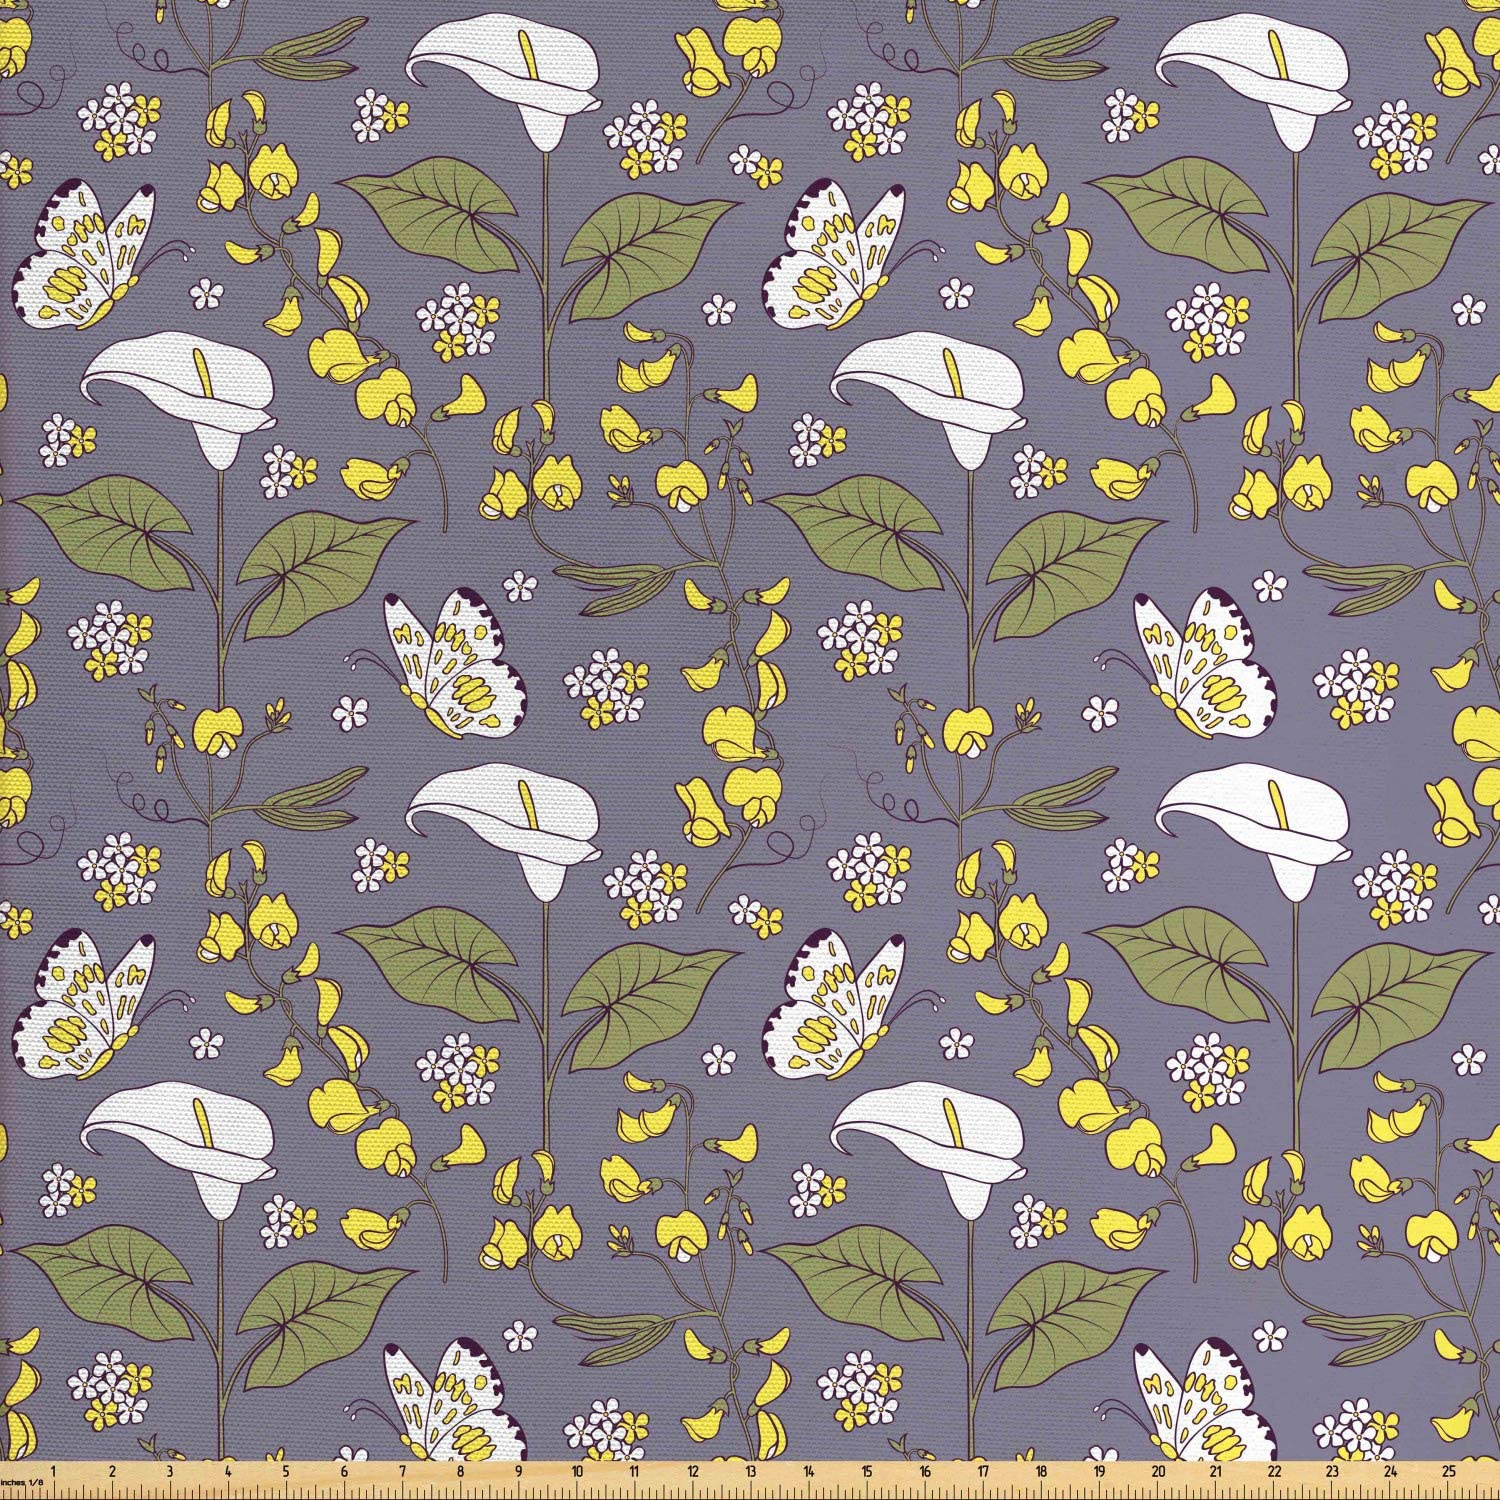 Lunarable Botanical Fabric by The Yard, Calla Lily Hybrids Flowers with Butterflies Shabby Leaves Bloom Garden Theme, Decorative Fabric for Upholstery and Home Accents, 1 Yard, Purple Green